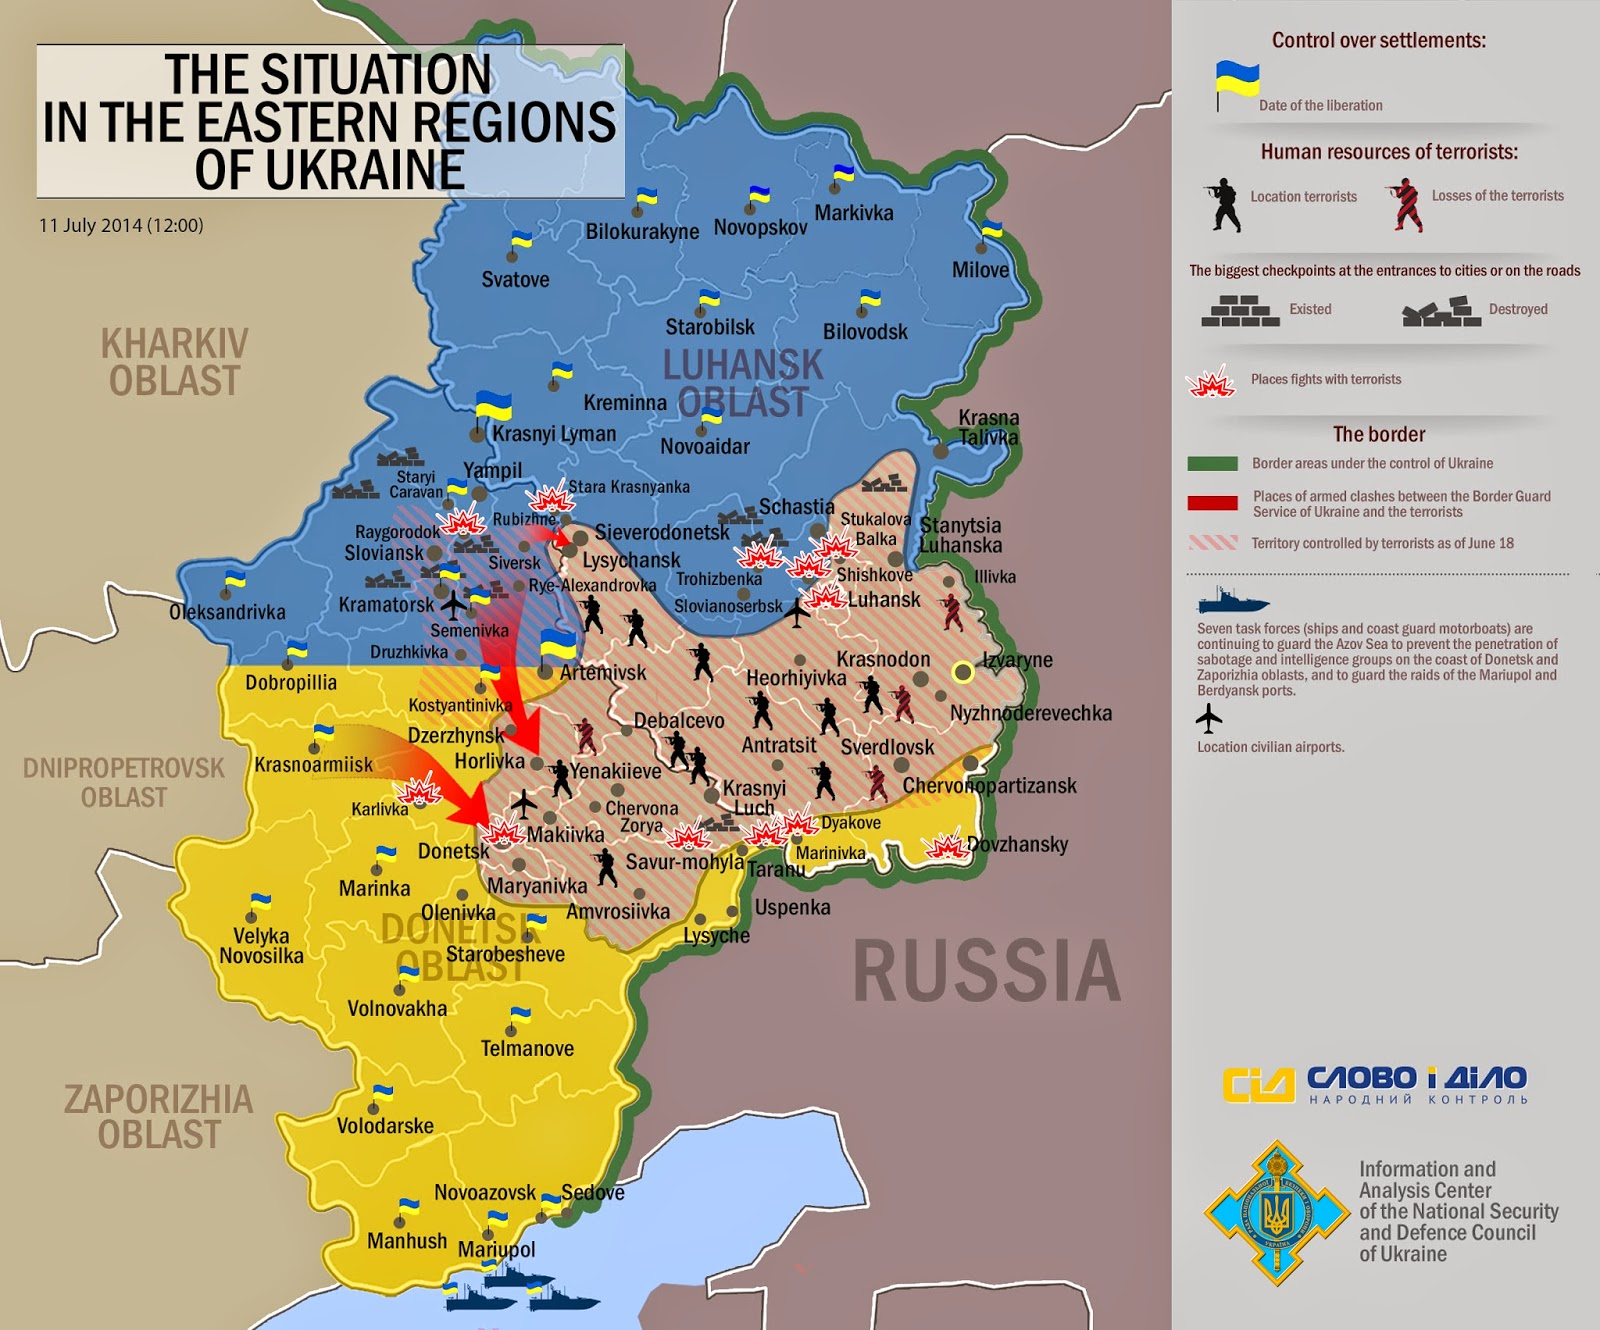 the situation in eastern ukraine on 11th july 2014 according to the national security and defence council of ukraine the border region primarily discussed